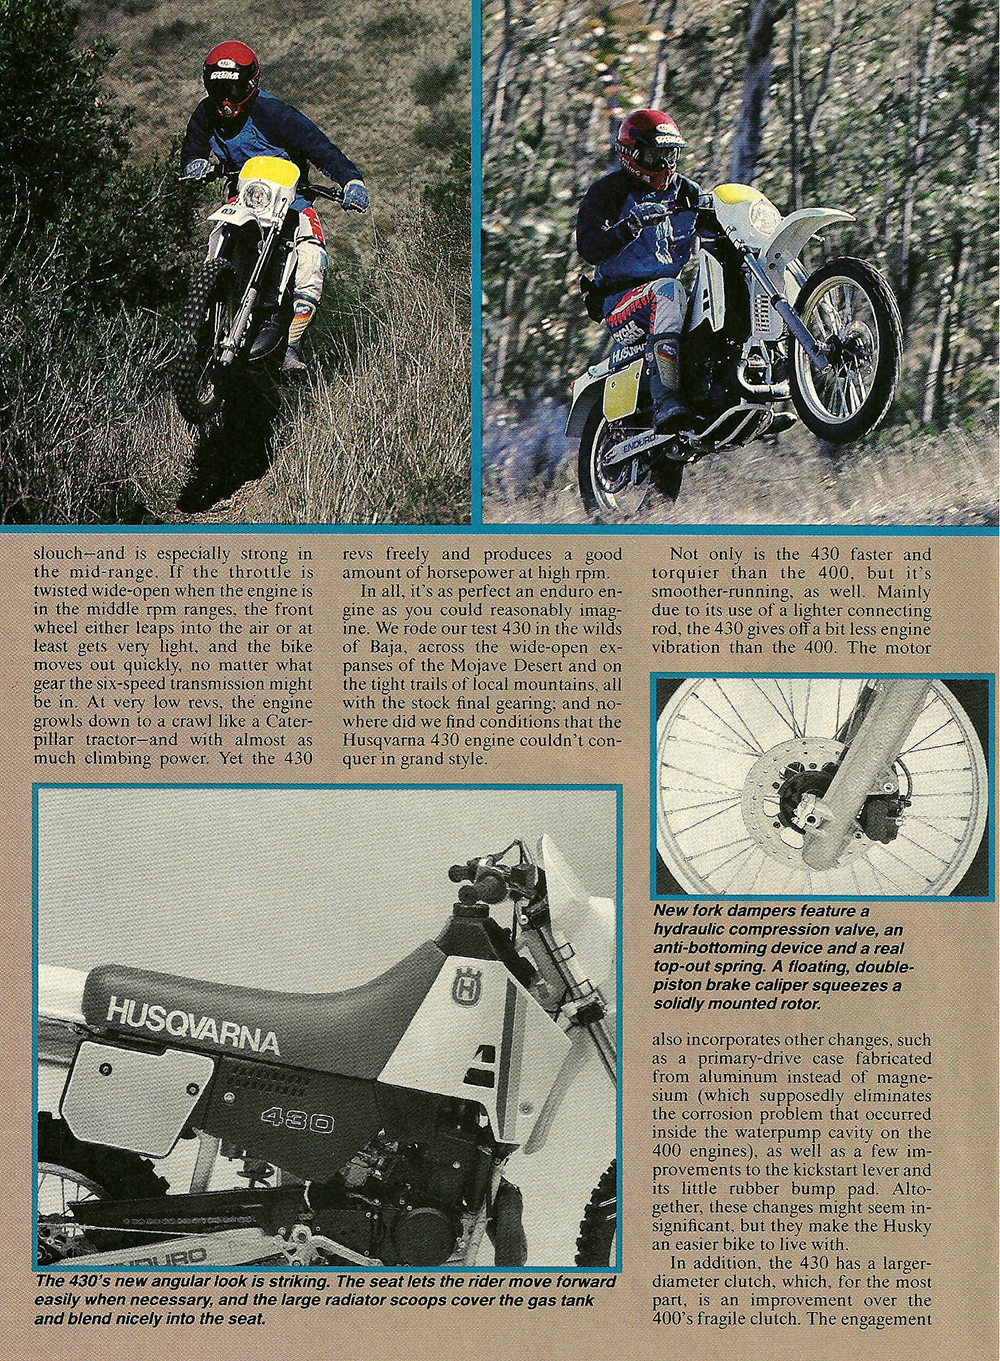 1987 Husqvarna 430 enduro road test 03.jpg